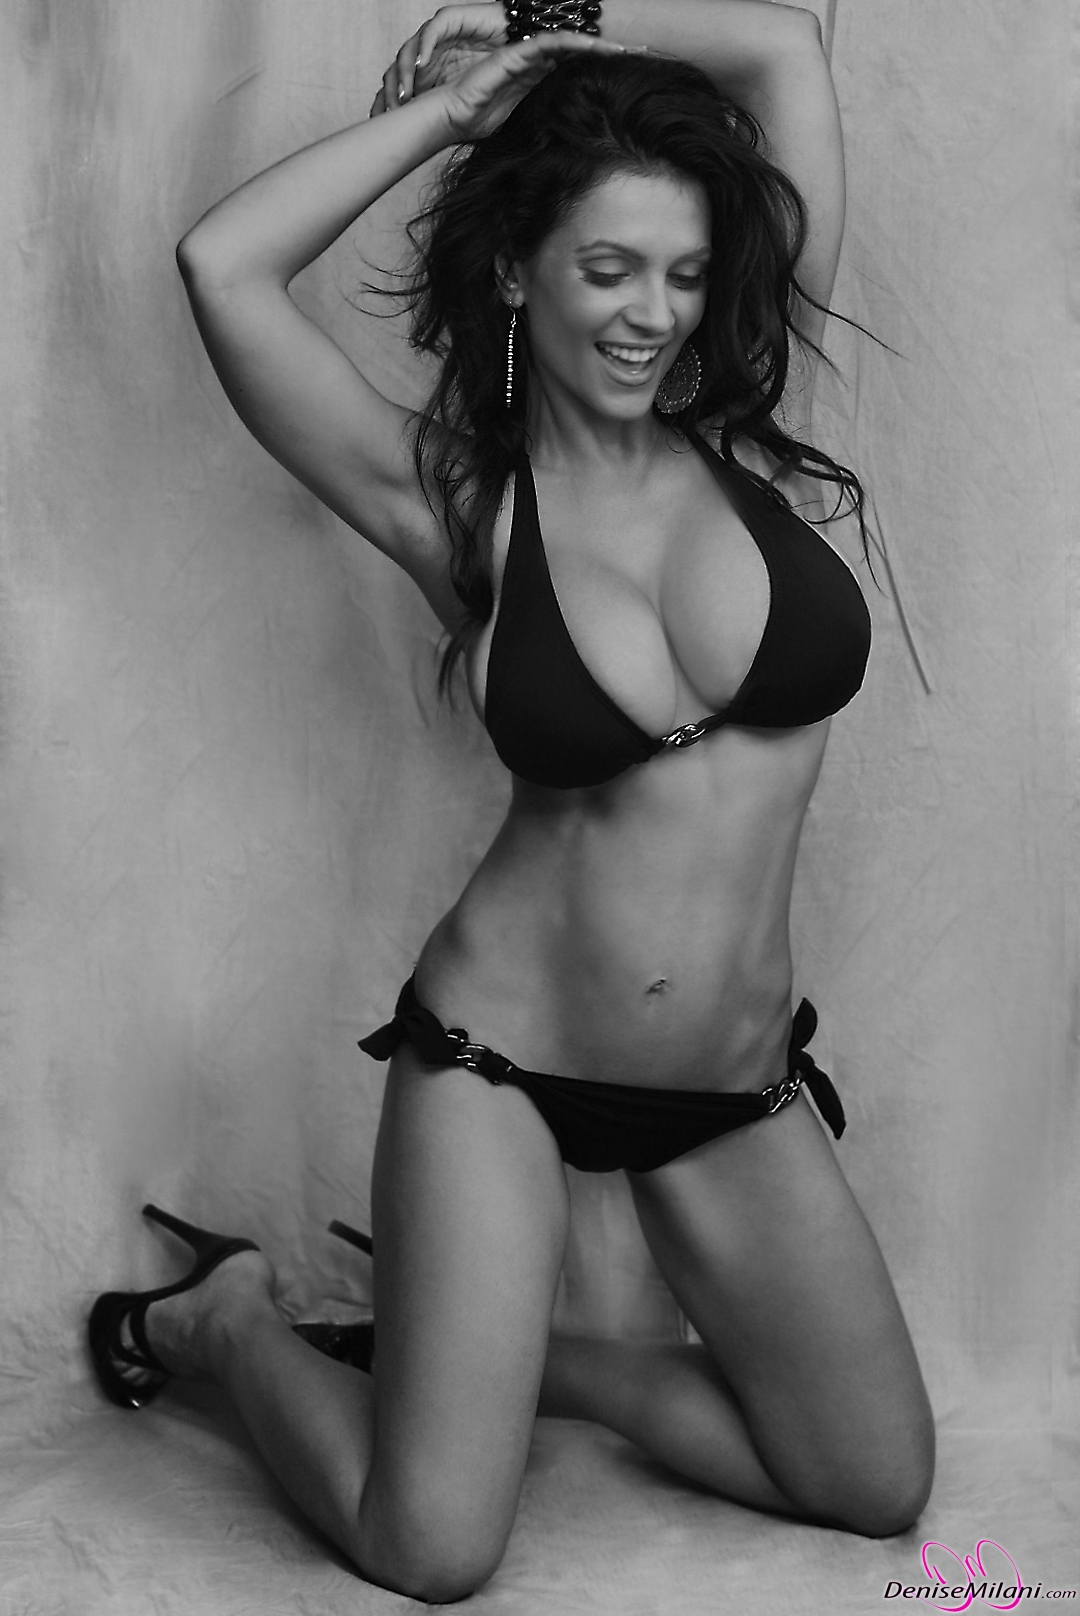 Denise-Milani-Black-and-White-4